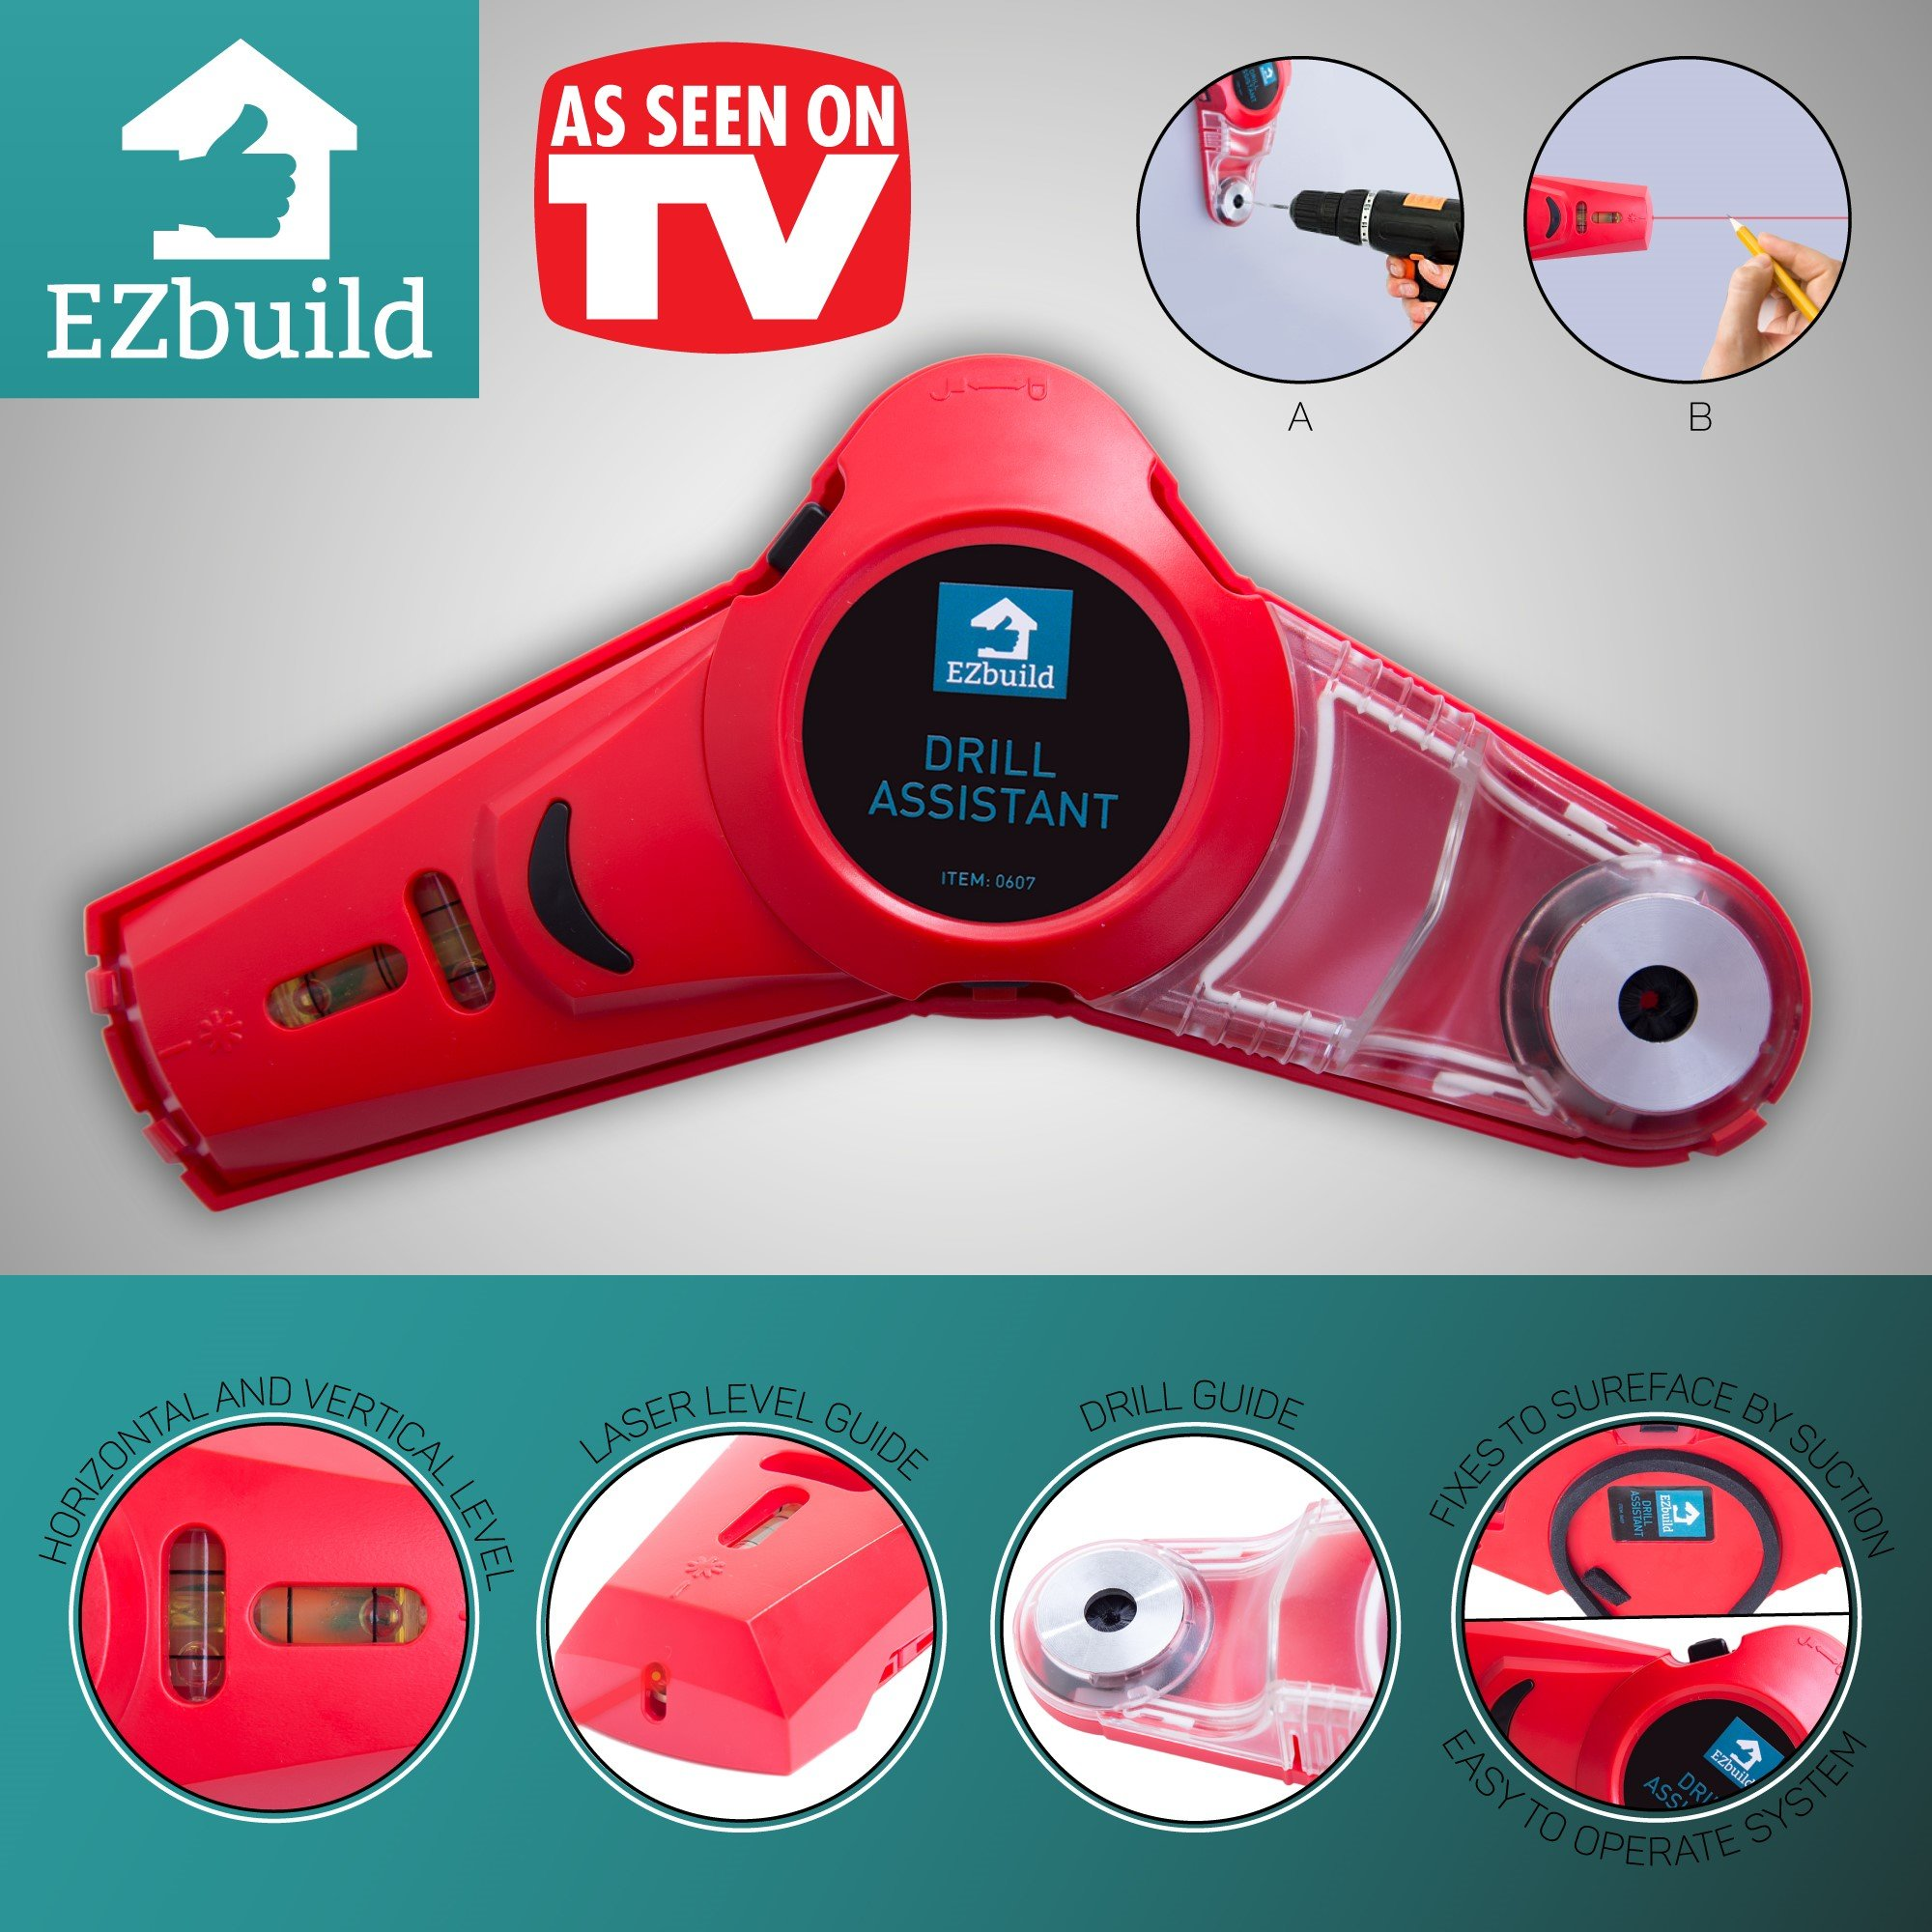 Drill Dust Collector Tool with Laser Level Picture Hanging Tools for Men l Cordless Dust Collector Measuring Alignment and Drilling Support | Drill Buddy DIY Projects